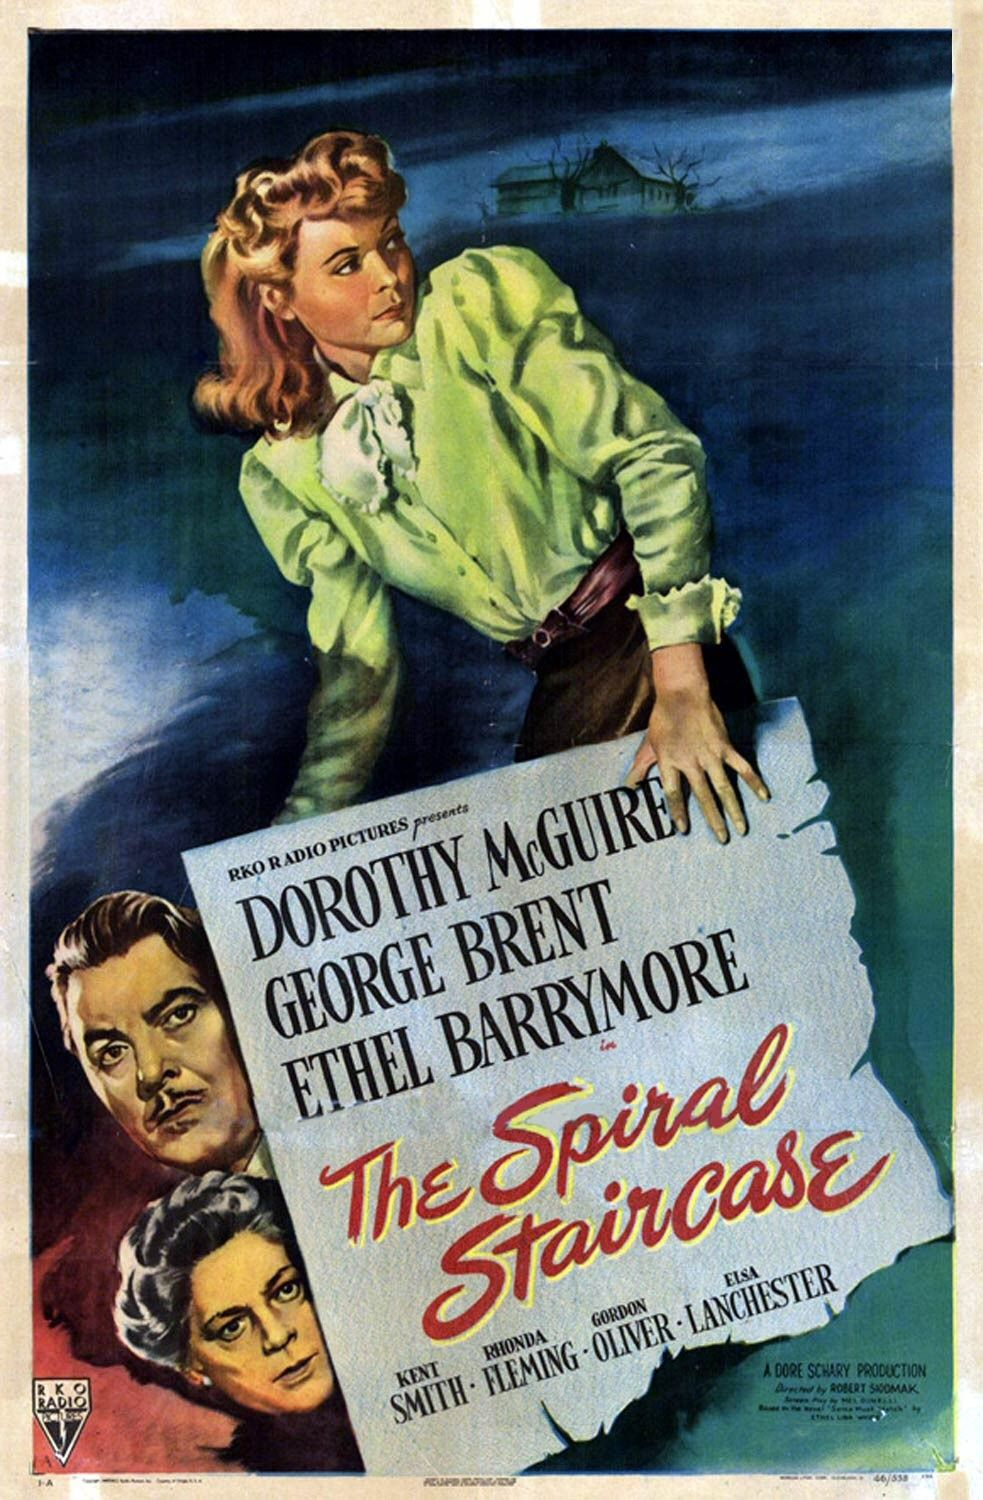 Ethel Barrymore, George Brent, and Dorothy McGuire in The Spiral Staircase (1946)